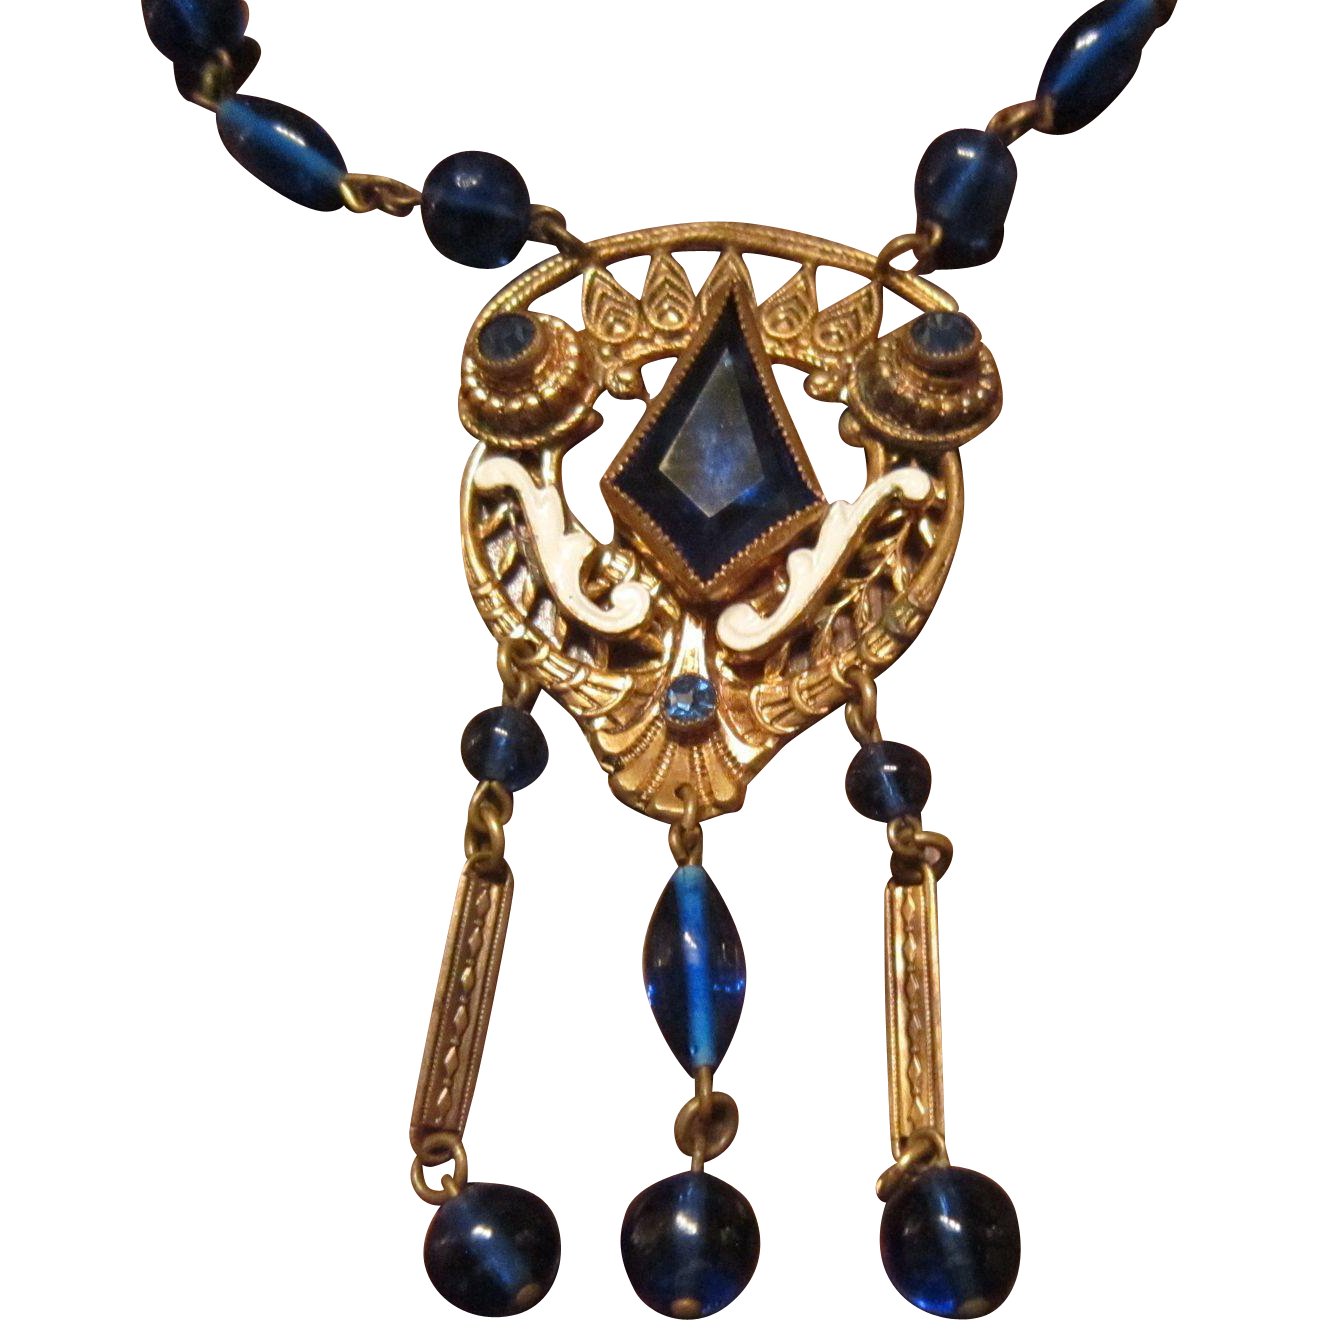 Neiger Blue Bead Necklace with a Pendant with a Kite Shaped Stone, White Enamel and Blue Rhinestones